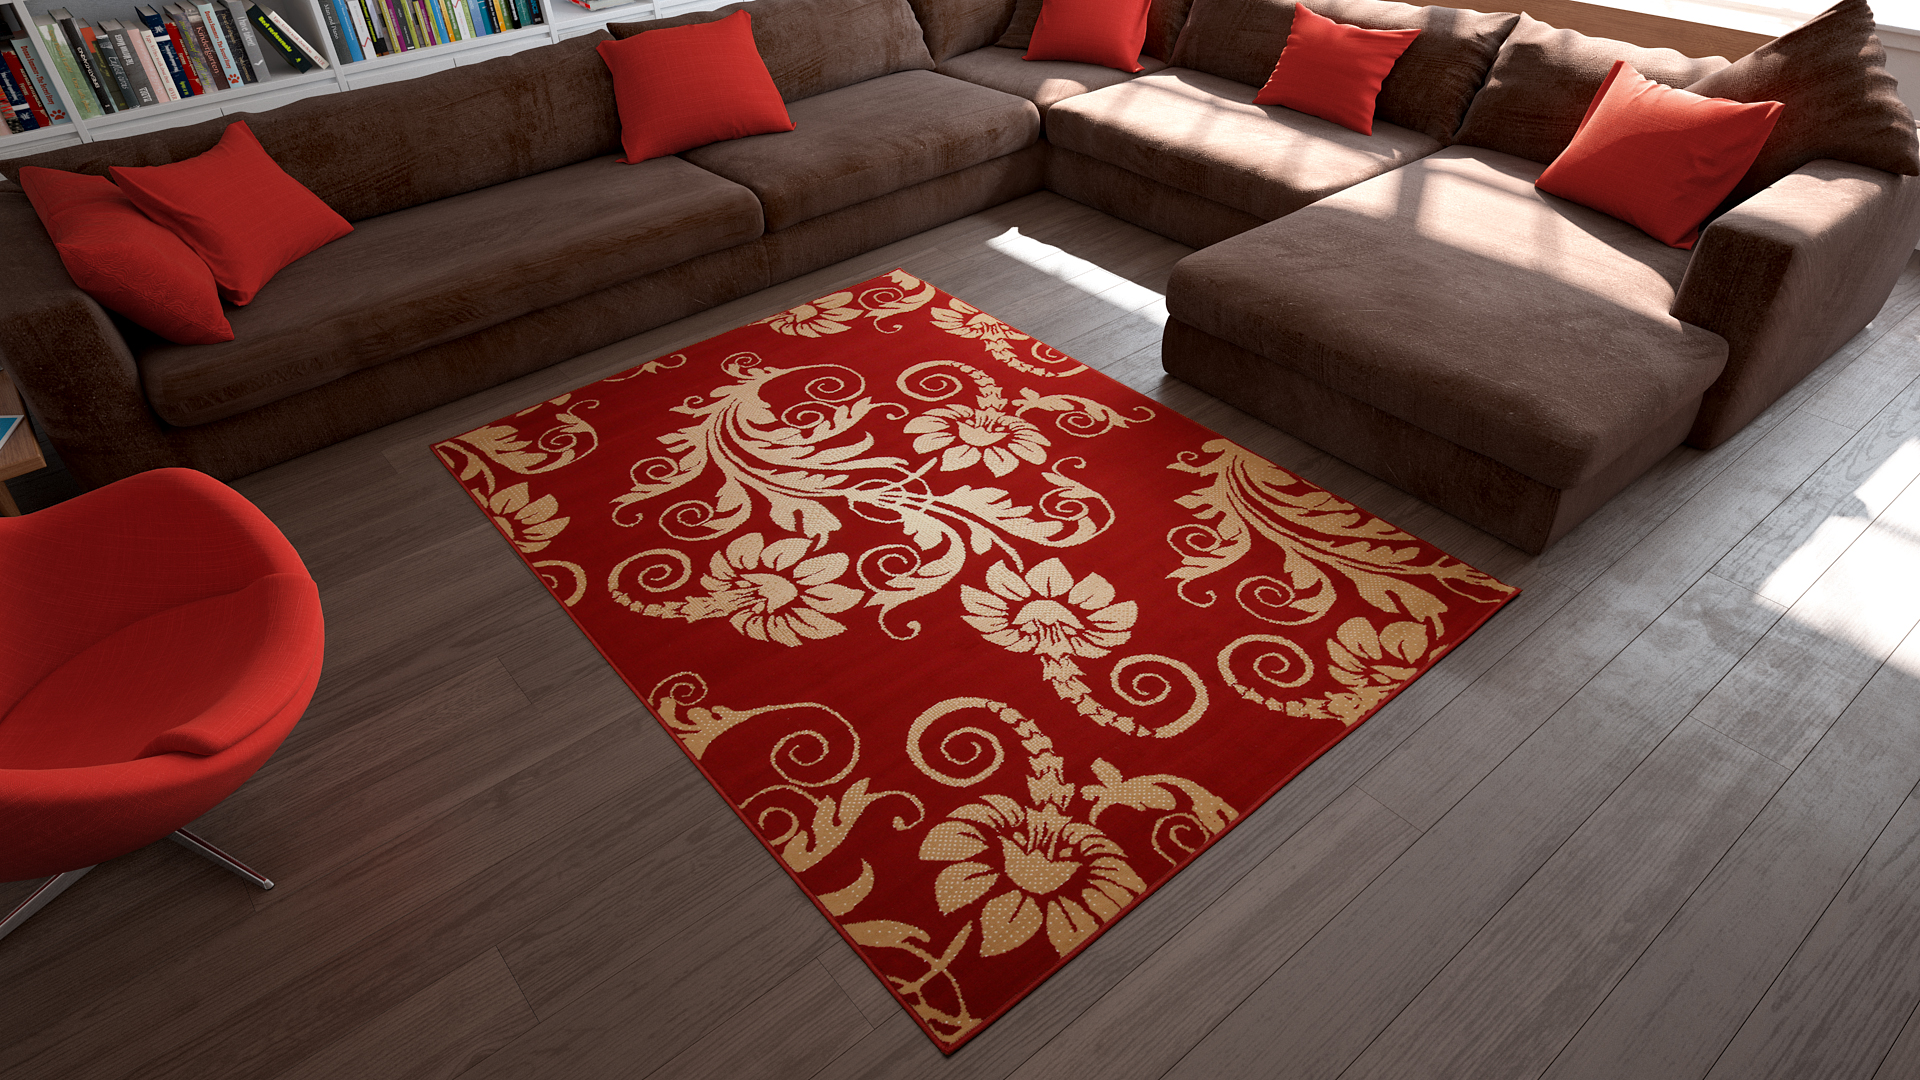 universol tapis salon fleurs rouge et blanc. Black Bedroom Furniture Sets. Home Design Ideas